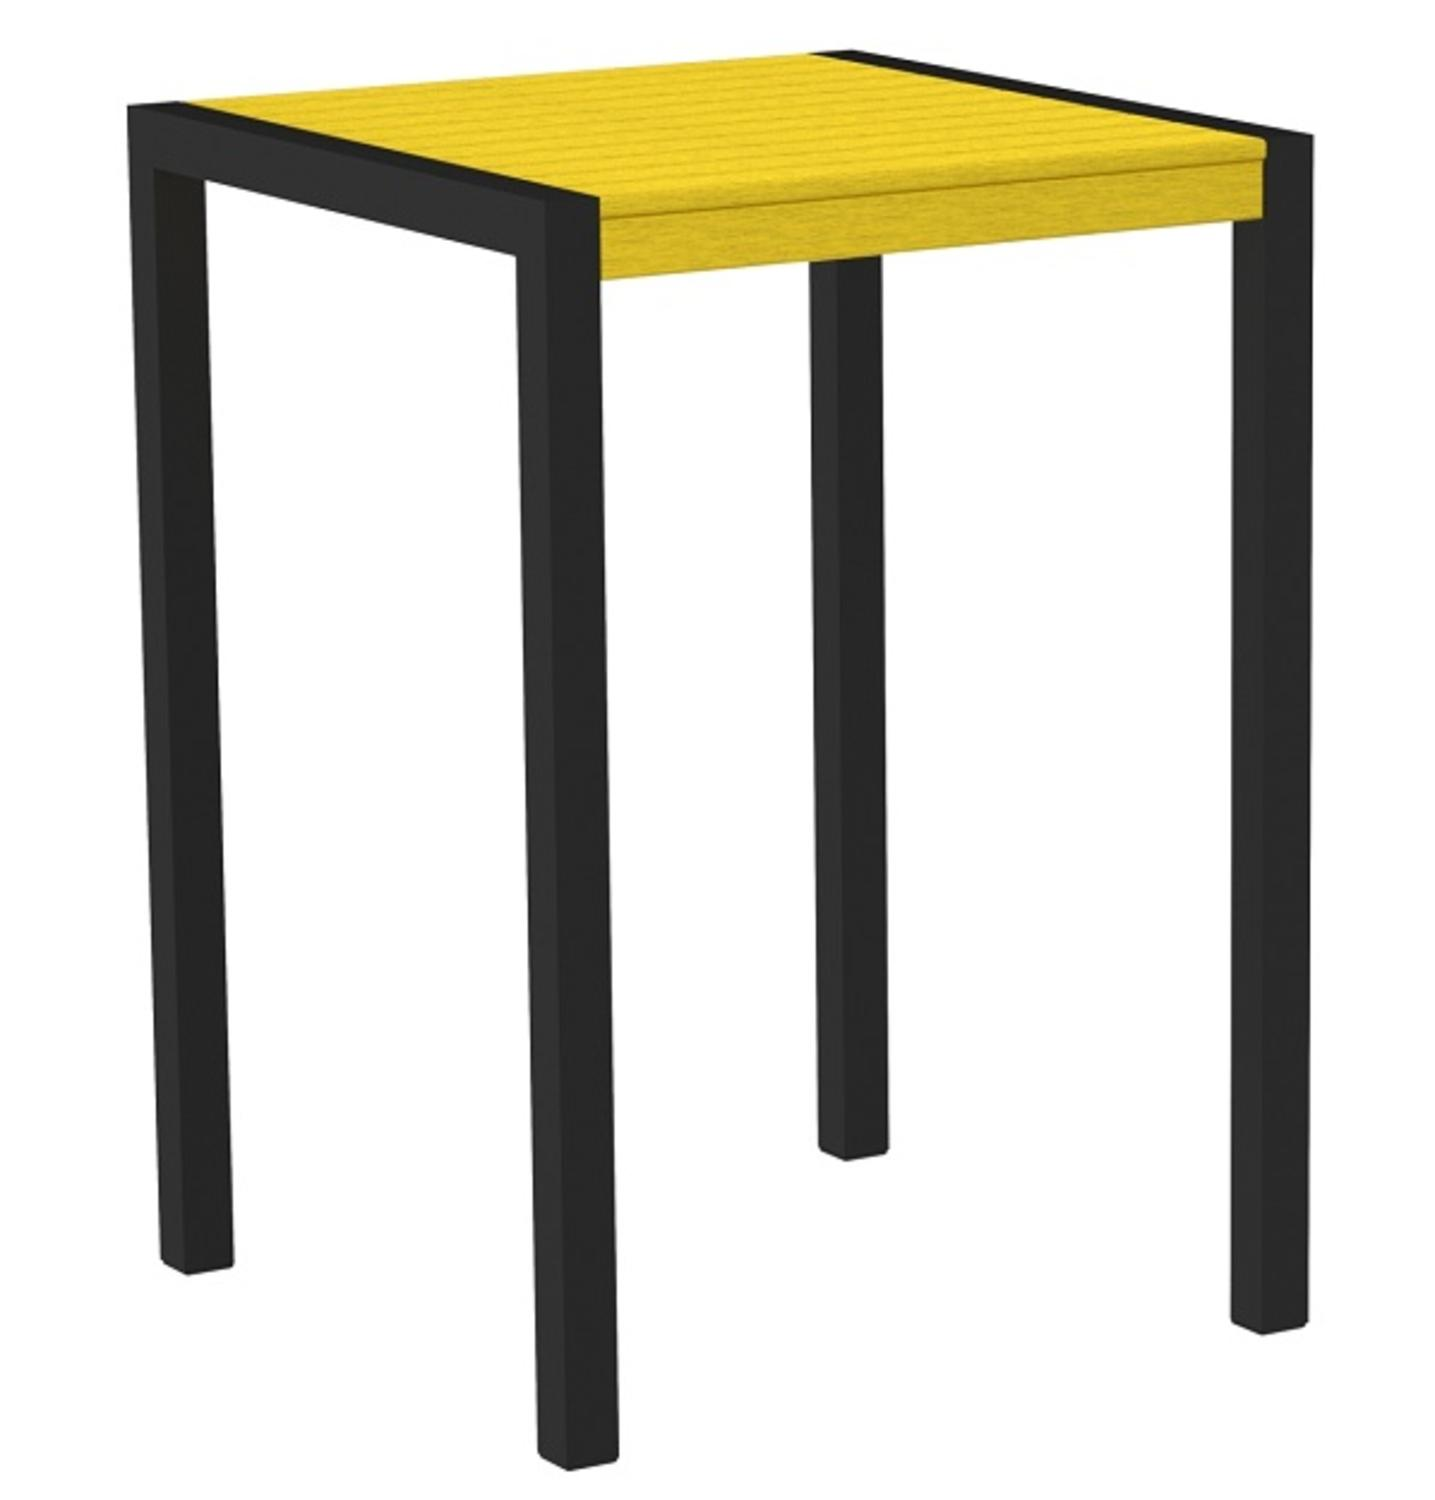 "42"" Recycled Earth-Friendly Outdoor Bar Table - Lemon Yellow with Black Frame"